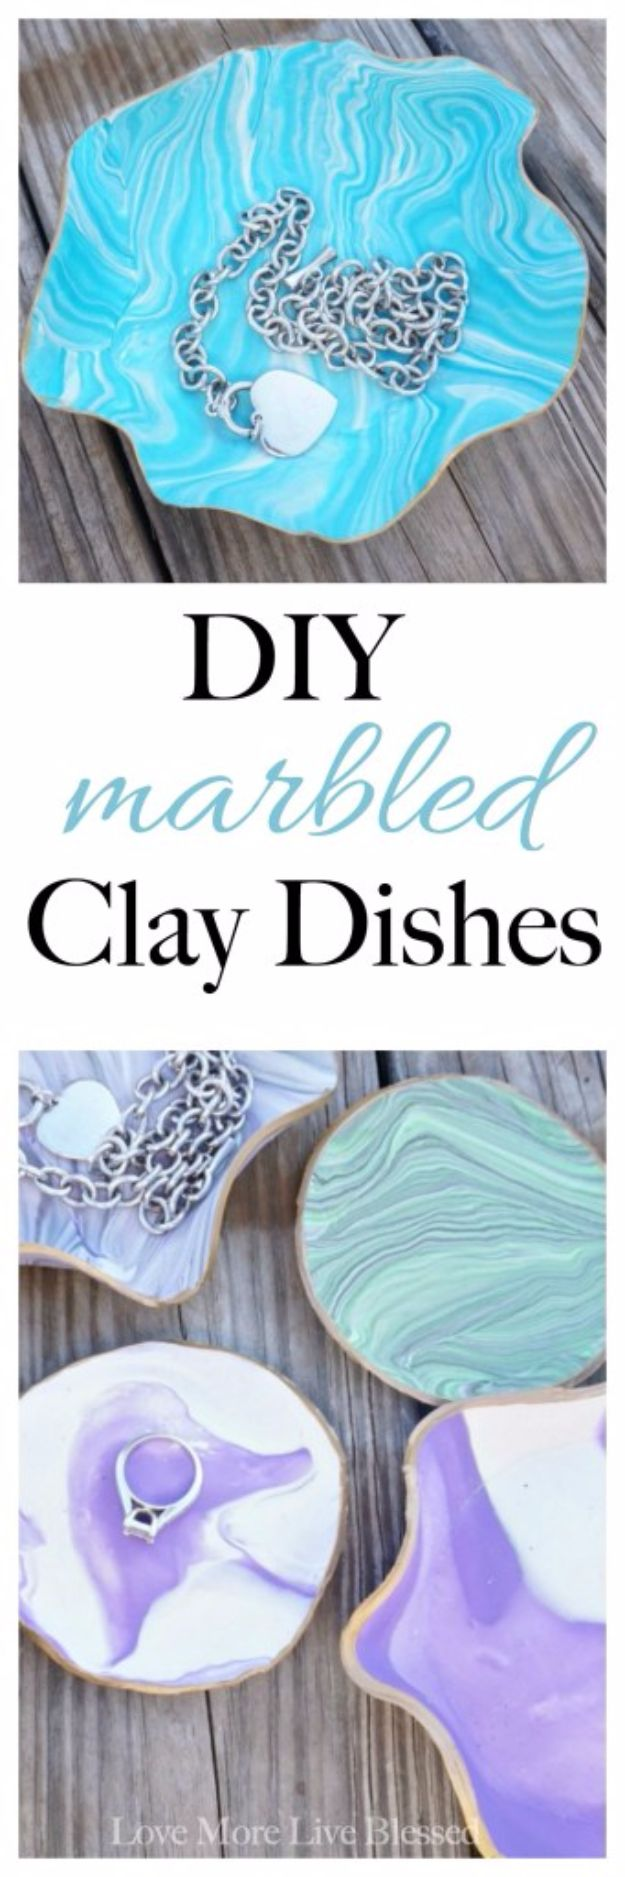 Cheap DIY Gifts and Inexpensive Homemade Christmas Gift Ideas for People on A Budget - DIY Marbled Clay Dishes - To Make These Cool Presents Instead of Buying for the Holidays - Easy and Low Cost Gifts for Mom, Dad, Friends and Family - Quick Dollar Store Crafts and Projects for Xmas Gift Giving #gifts #diy